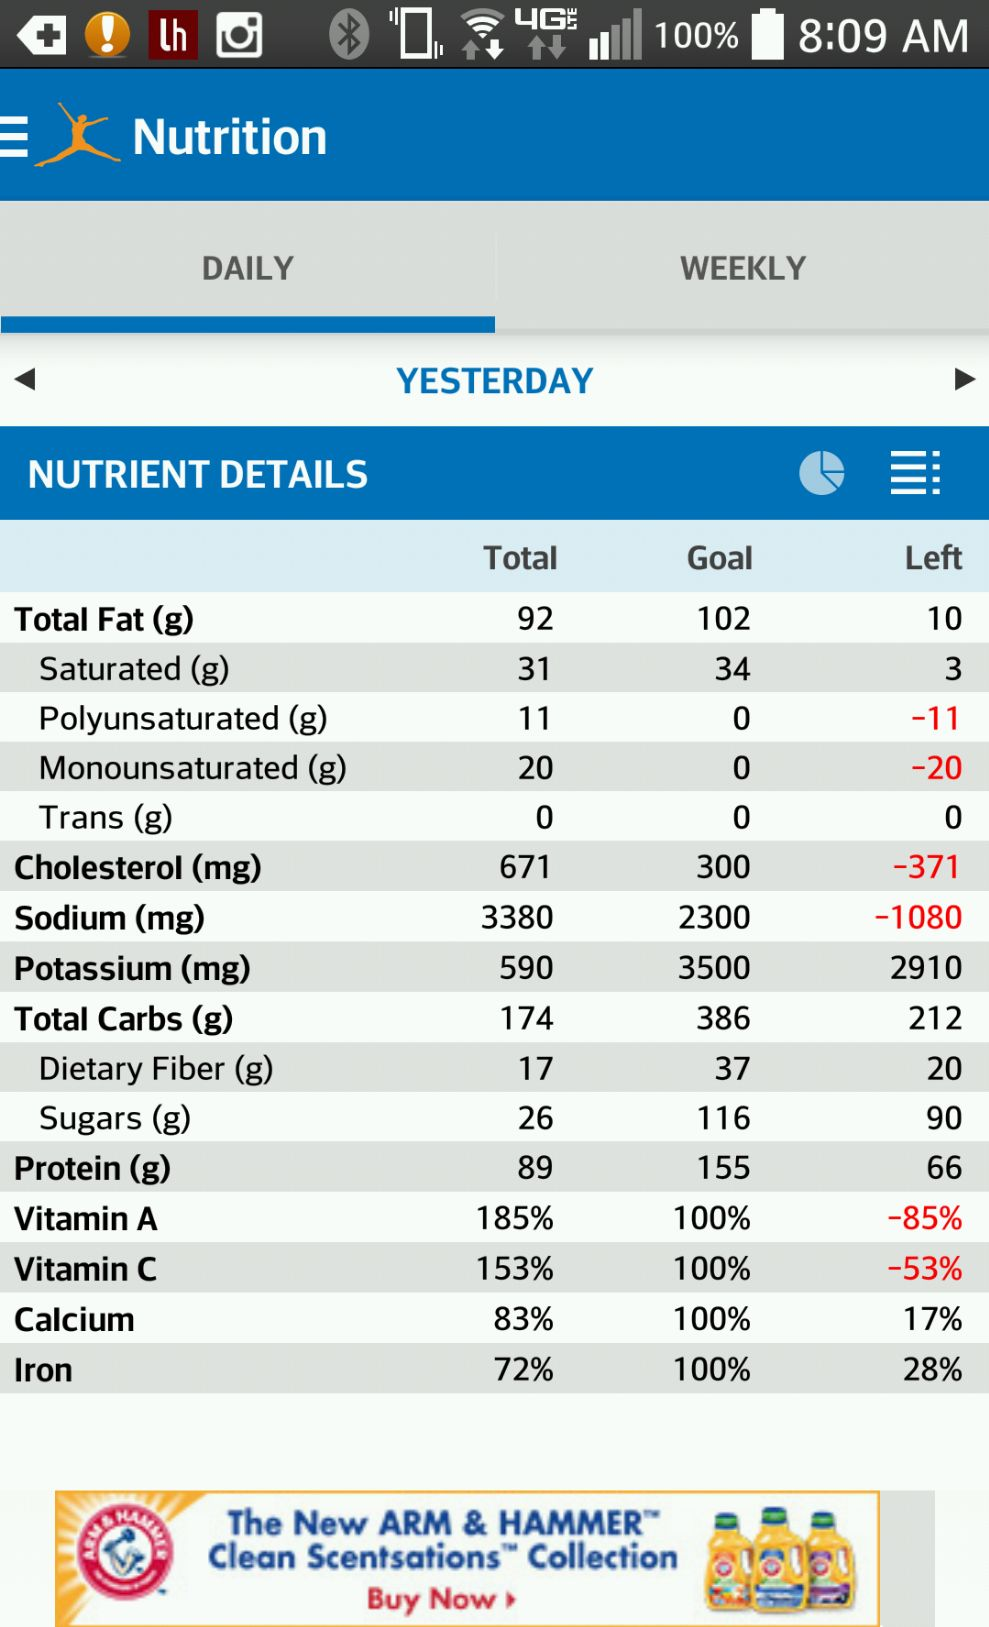 My Fitness Pal daily nutrition view. And the ad that came with it.